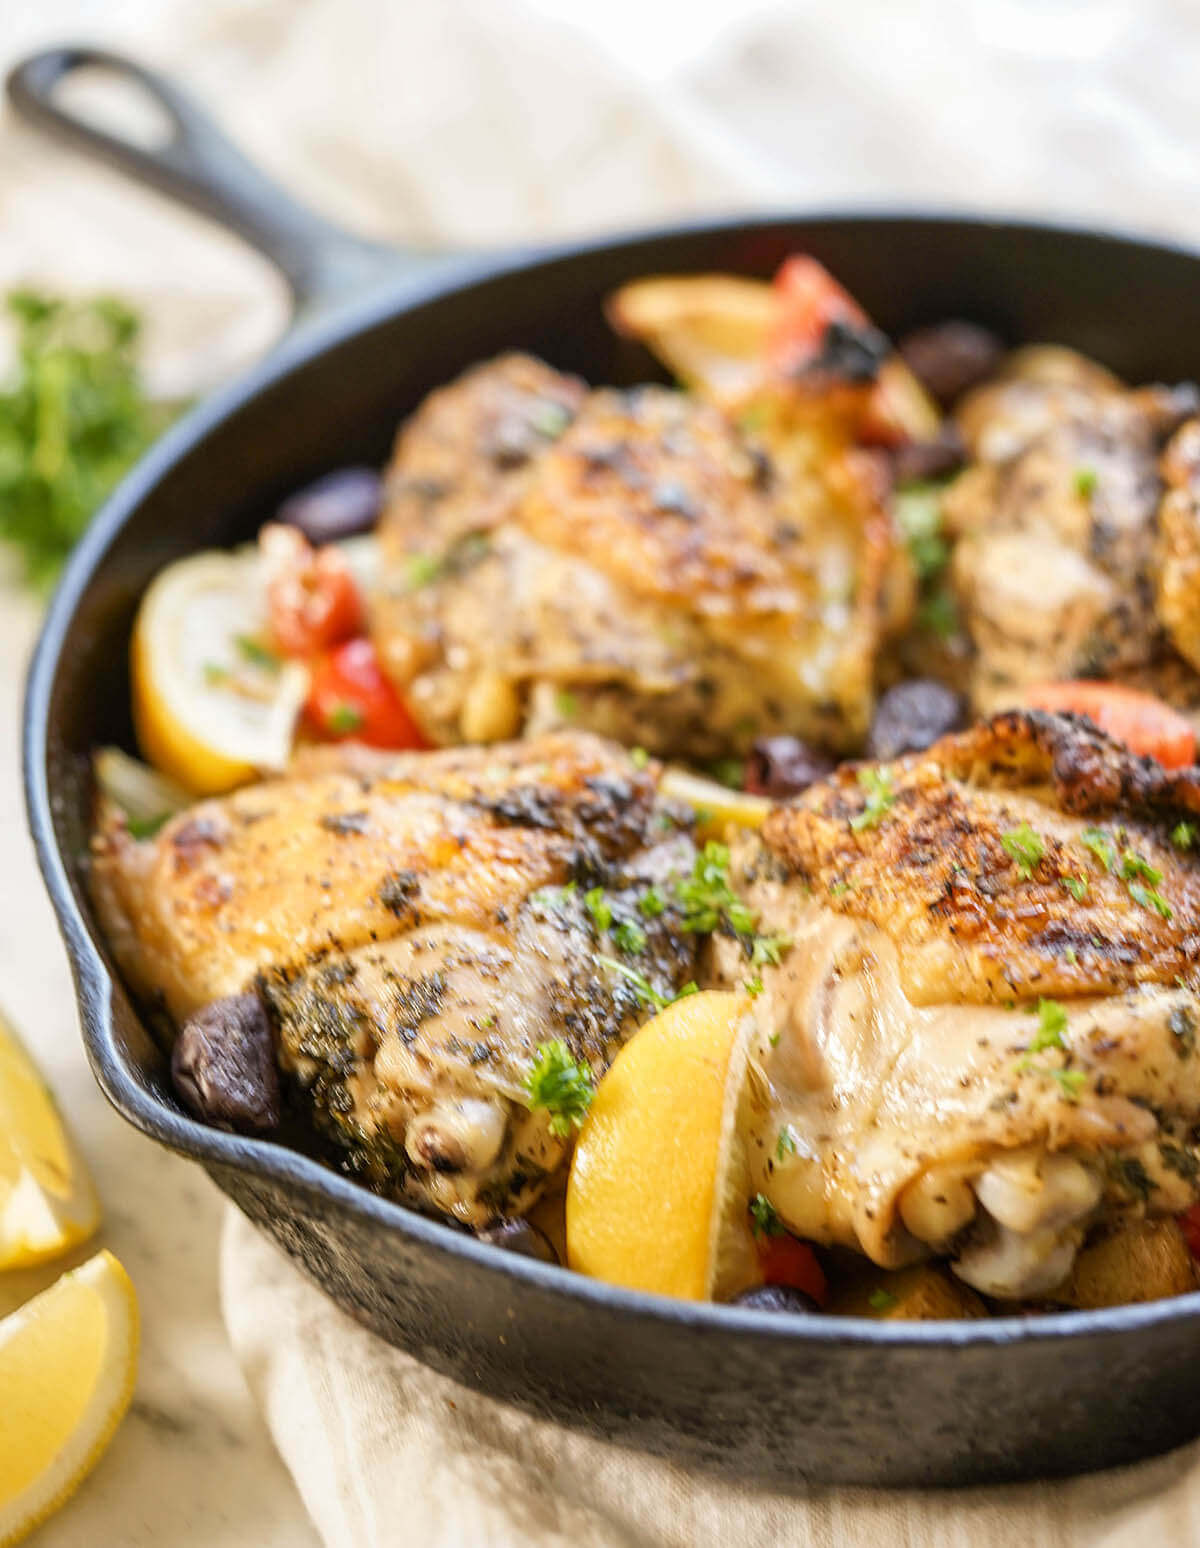 Skillet Chicken and Potatoes served with lemon.